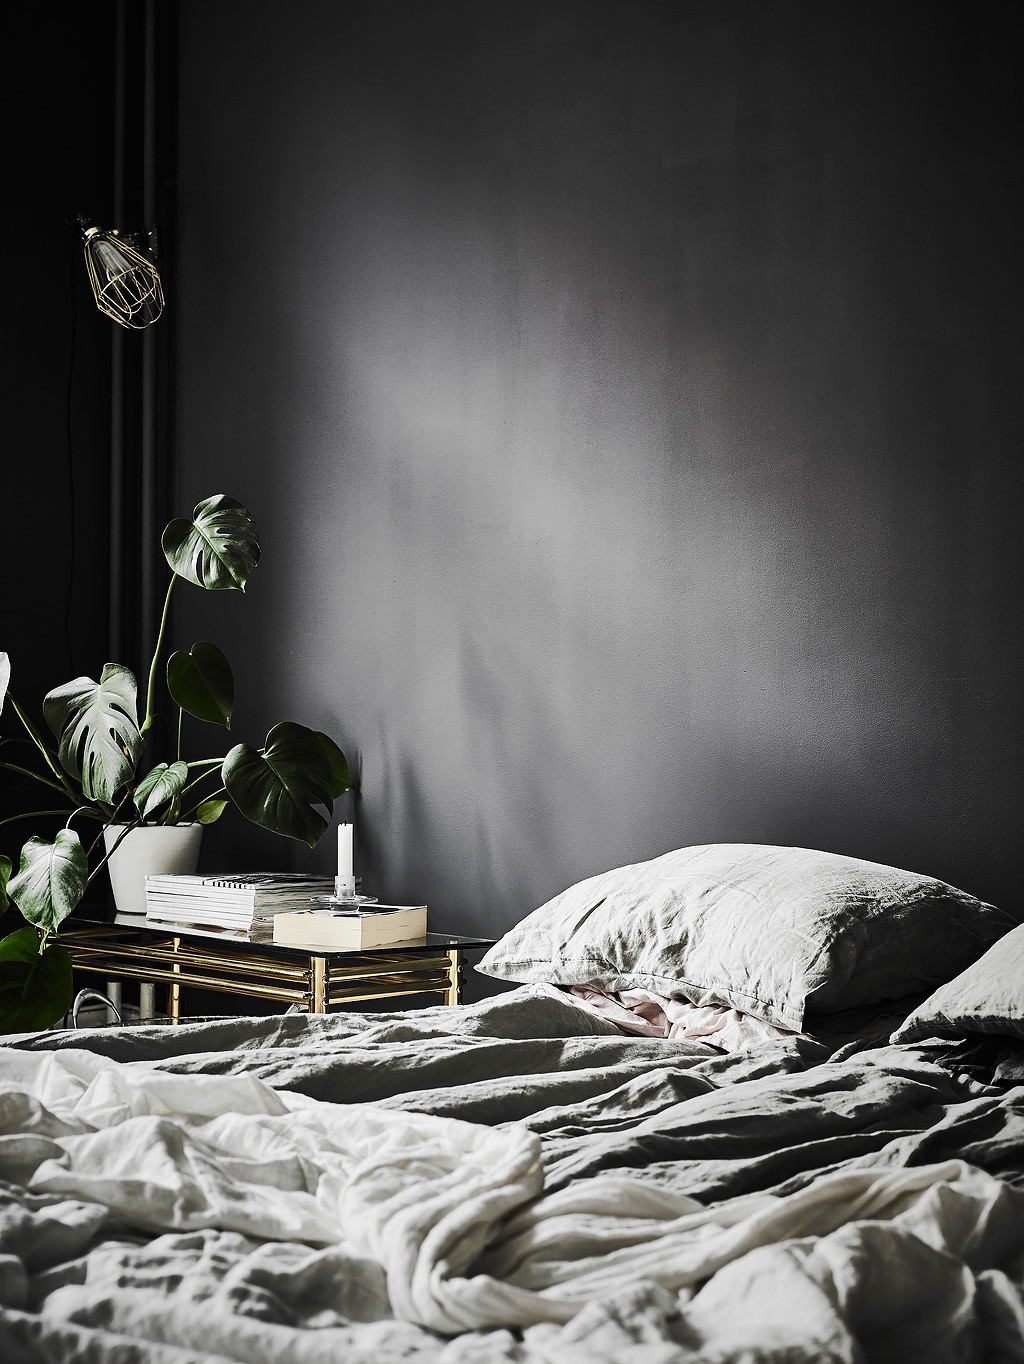 In trend: messy bed